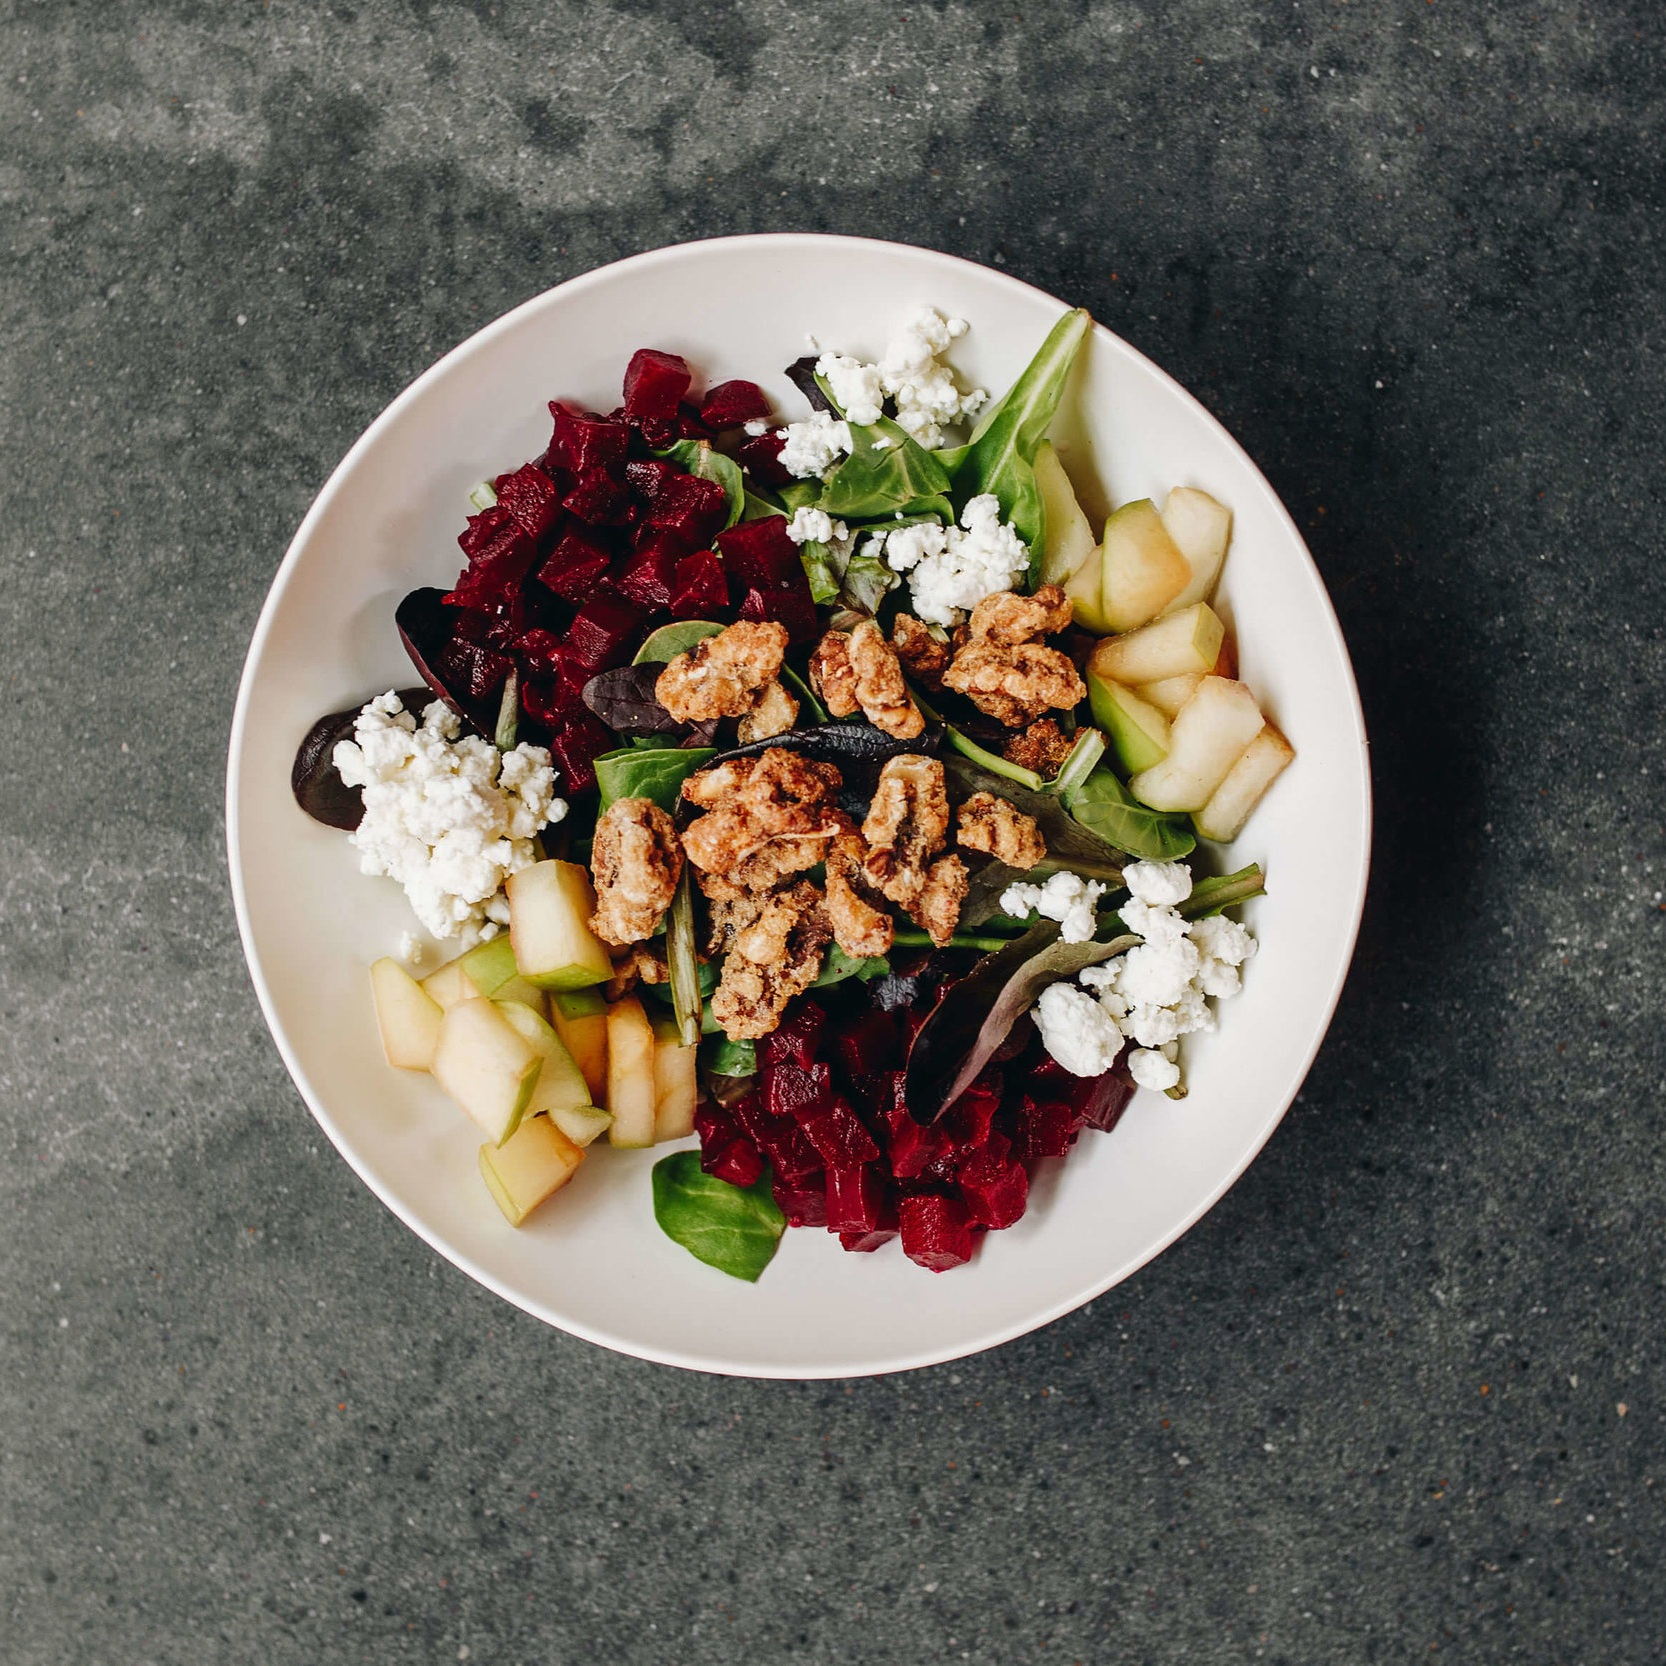 LOCAL ROOTS - Mixed greens, roasted beets, Brussel sproutsl, local goat cheese, caramelized walnuts, maple sherry dressing8.50